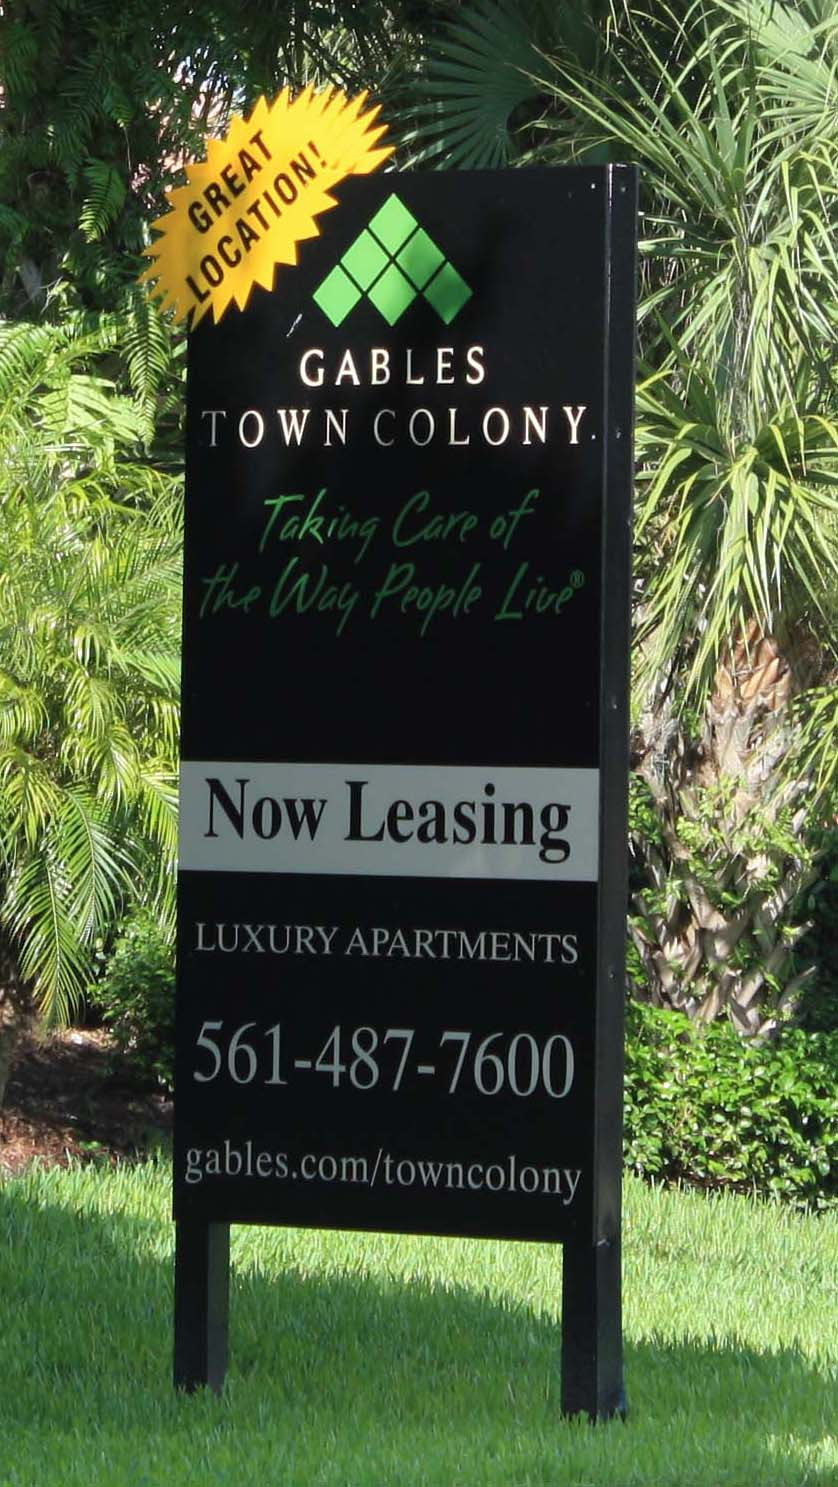 Now Leasing Signs